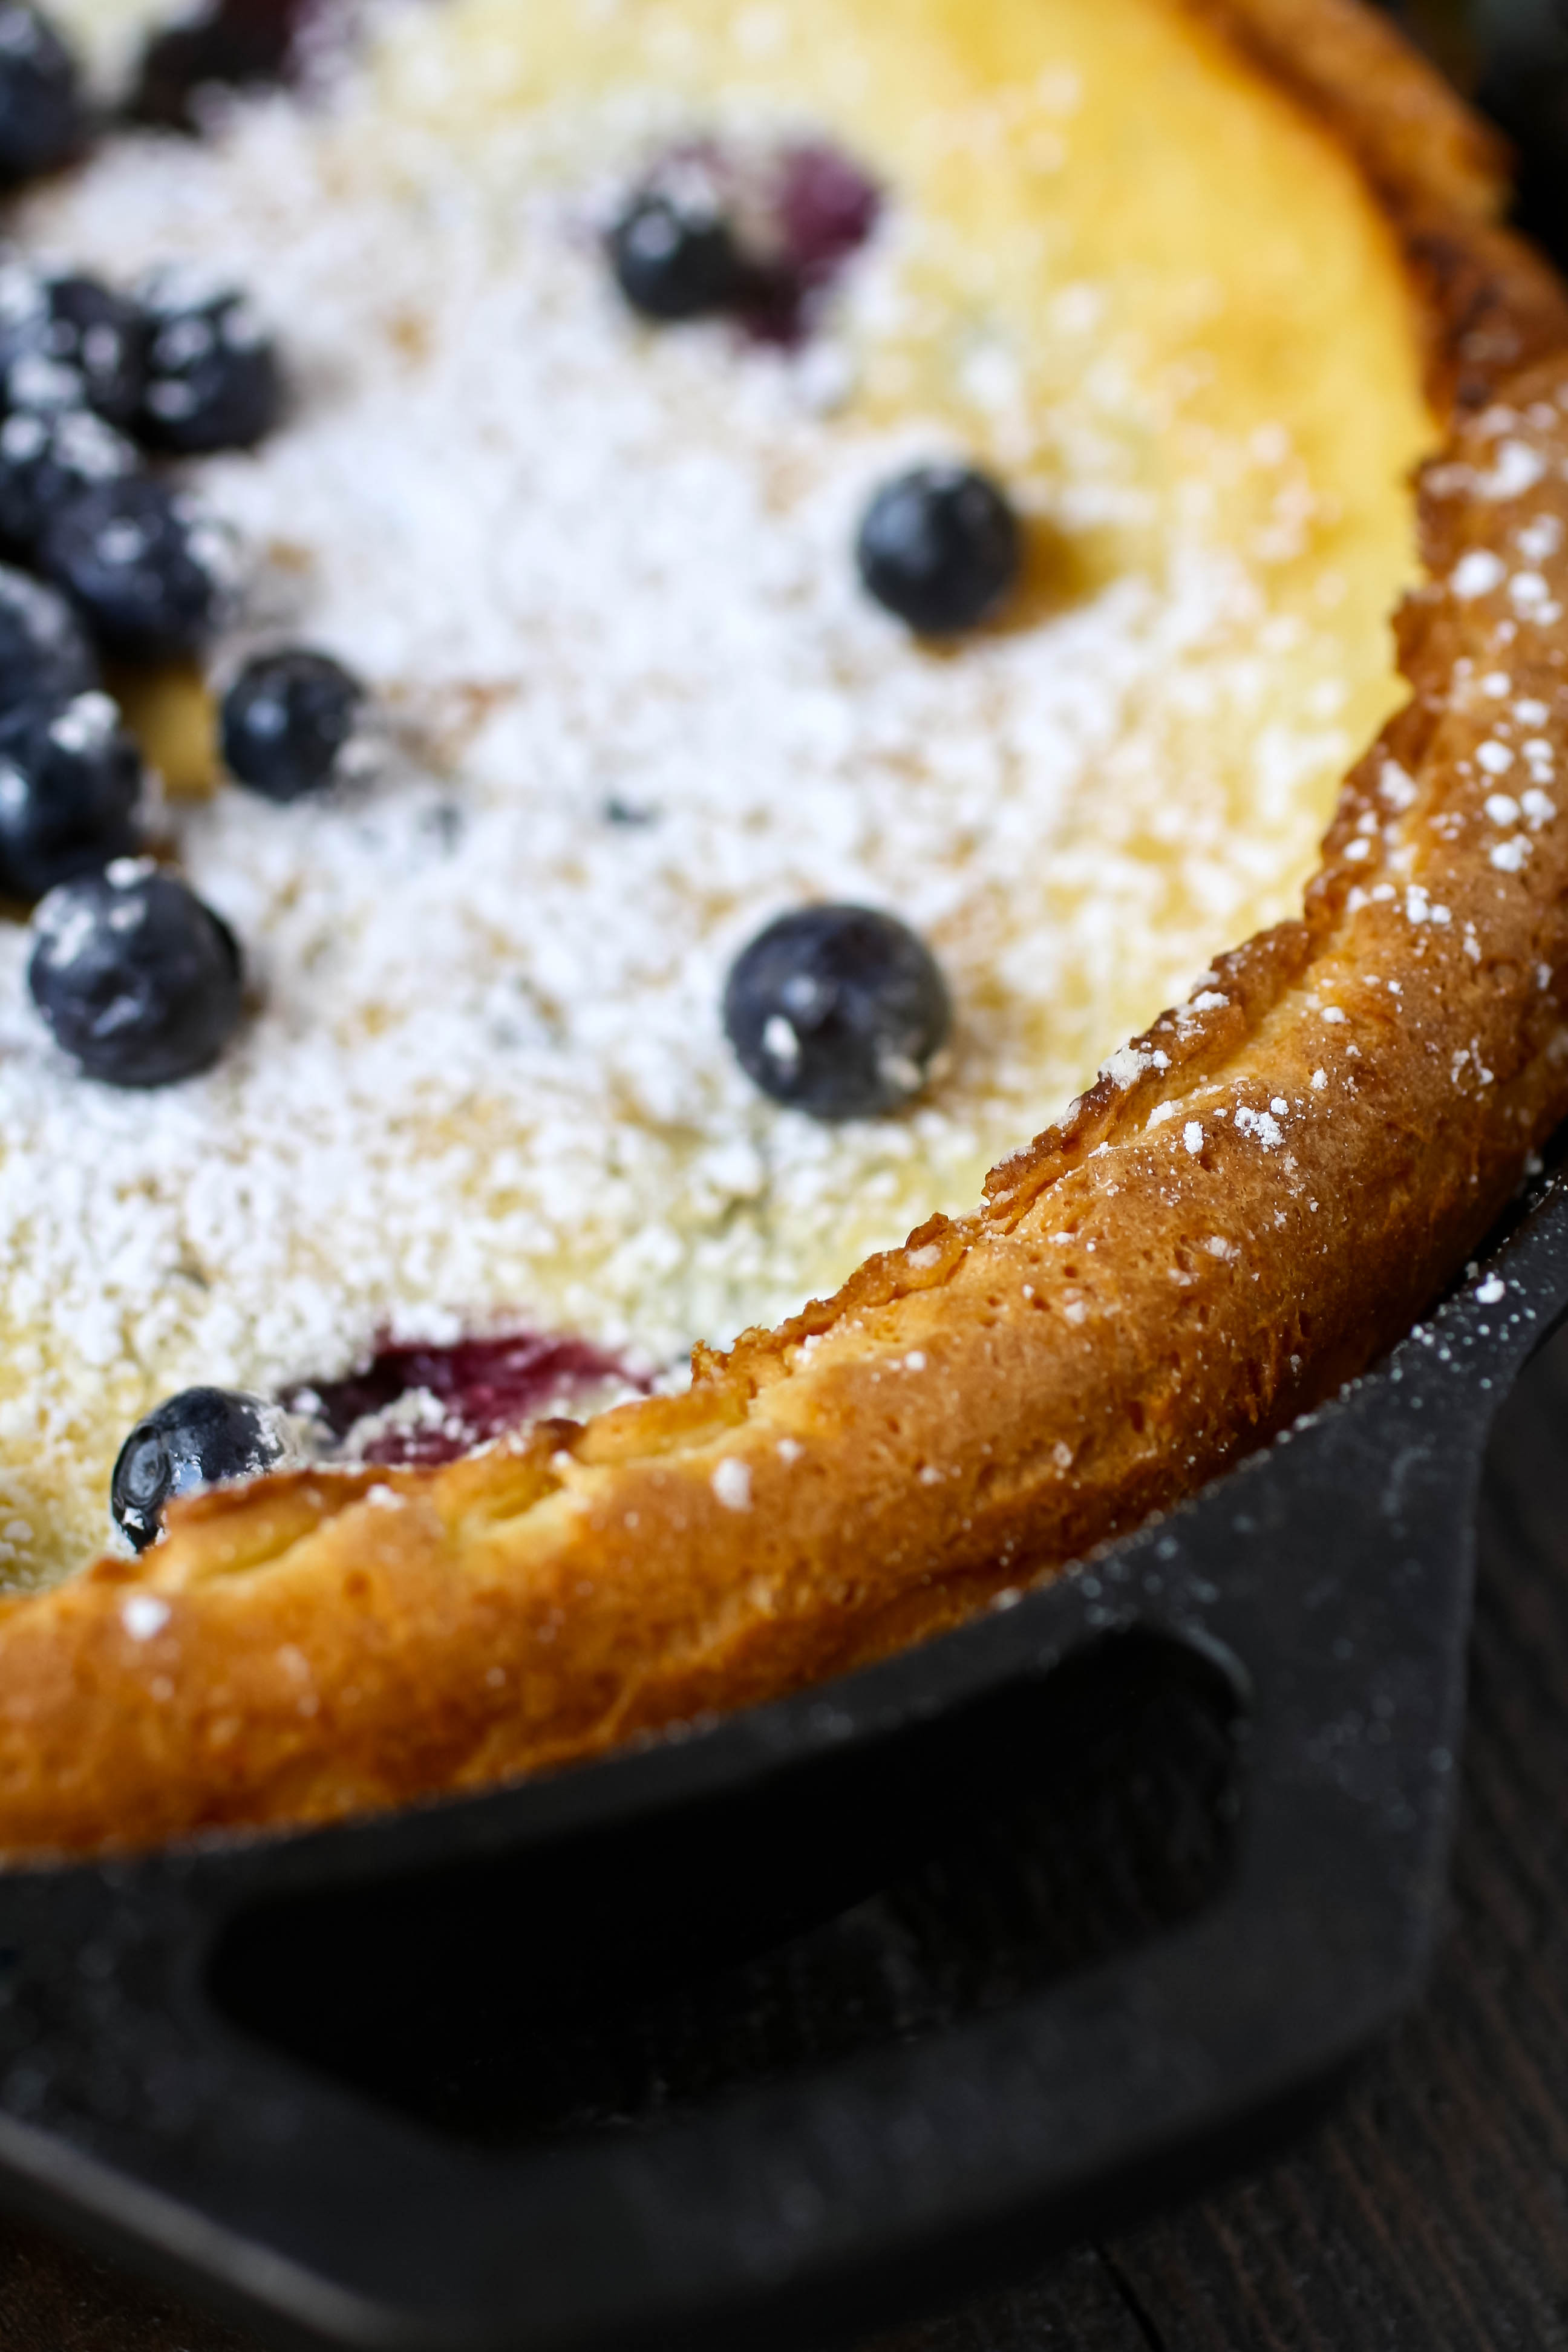 Blueberry Dutch Baby Pancake is a delight for a special breakfast or brunch like Mother's Day. Blueberry Dutch Baby Pancake makes a lovely breakfast treat.